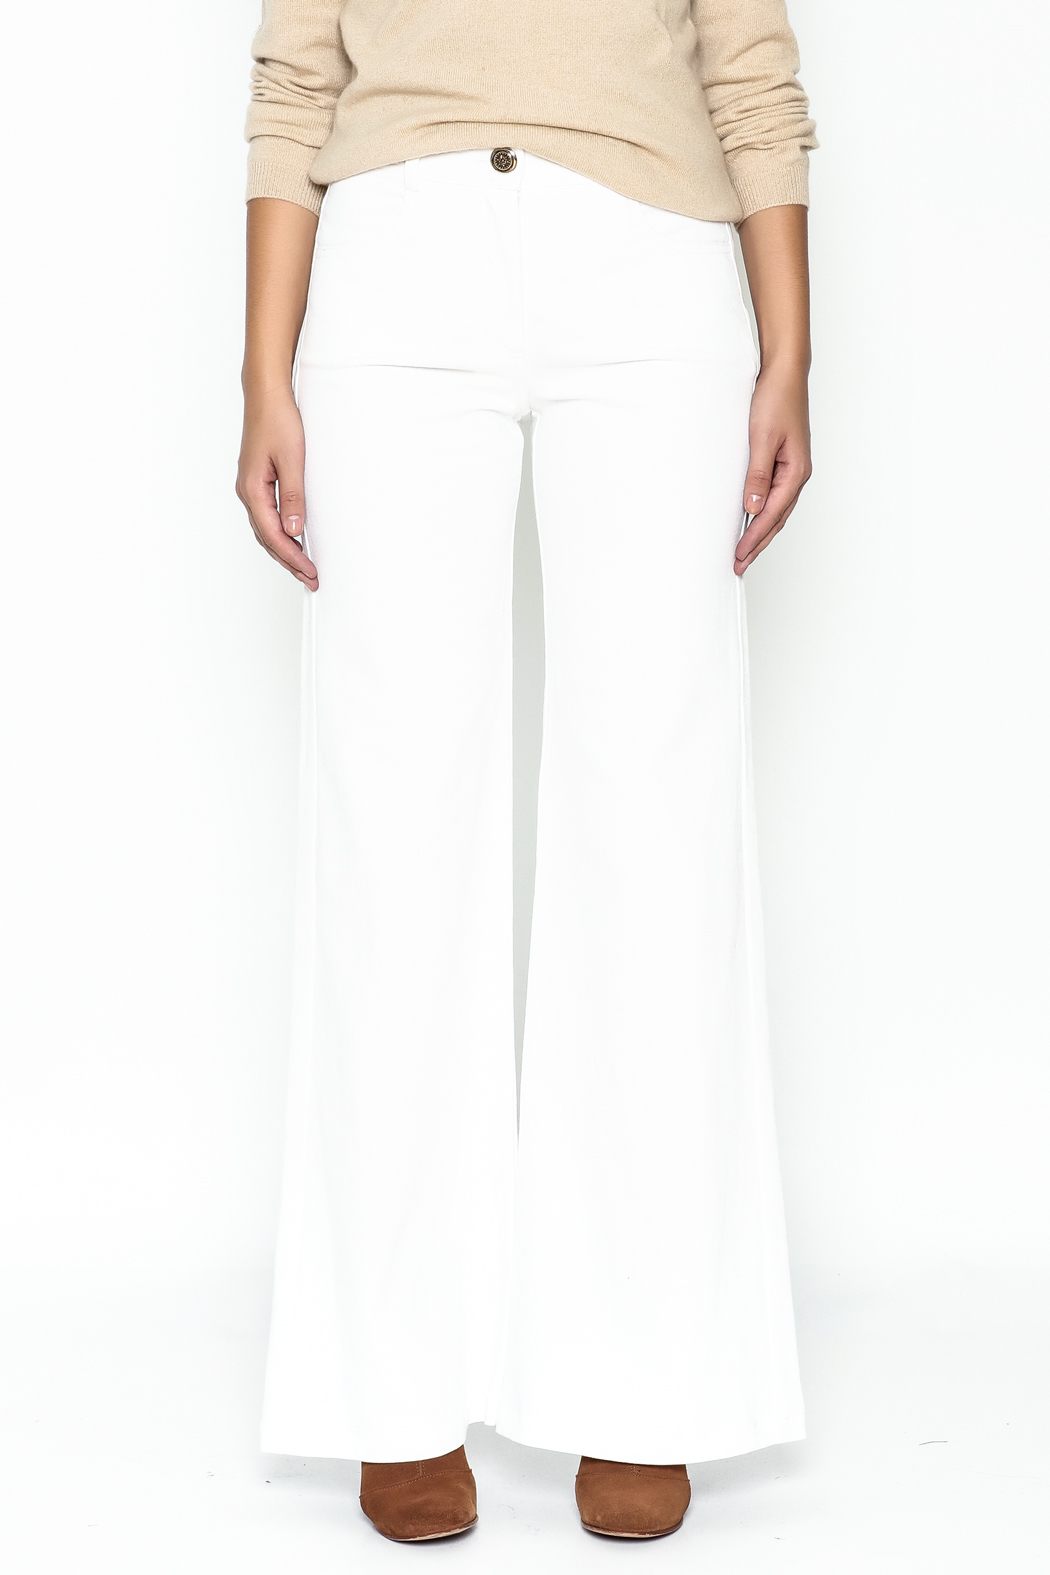 Julie Dorst White Denim Flare Pants - Front Full Image